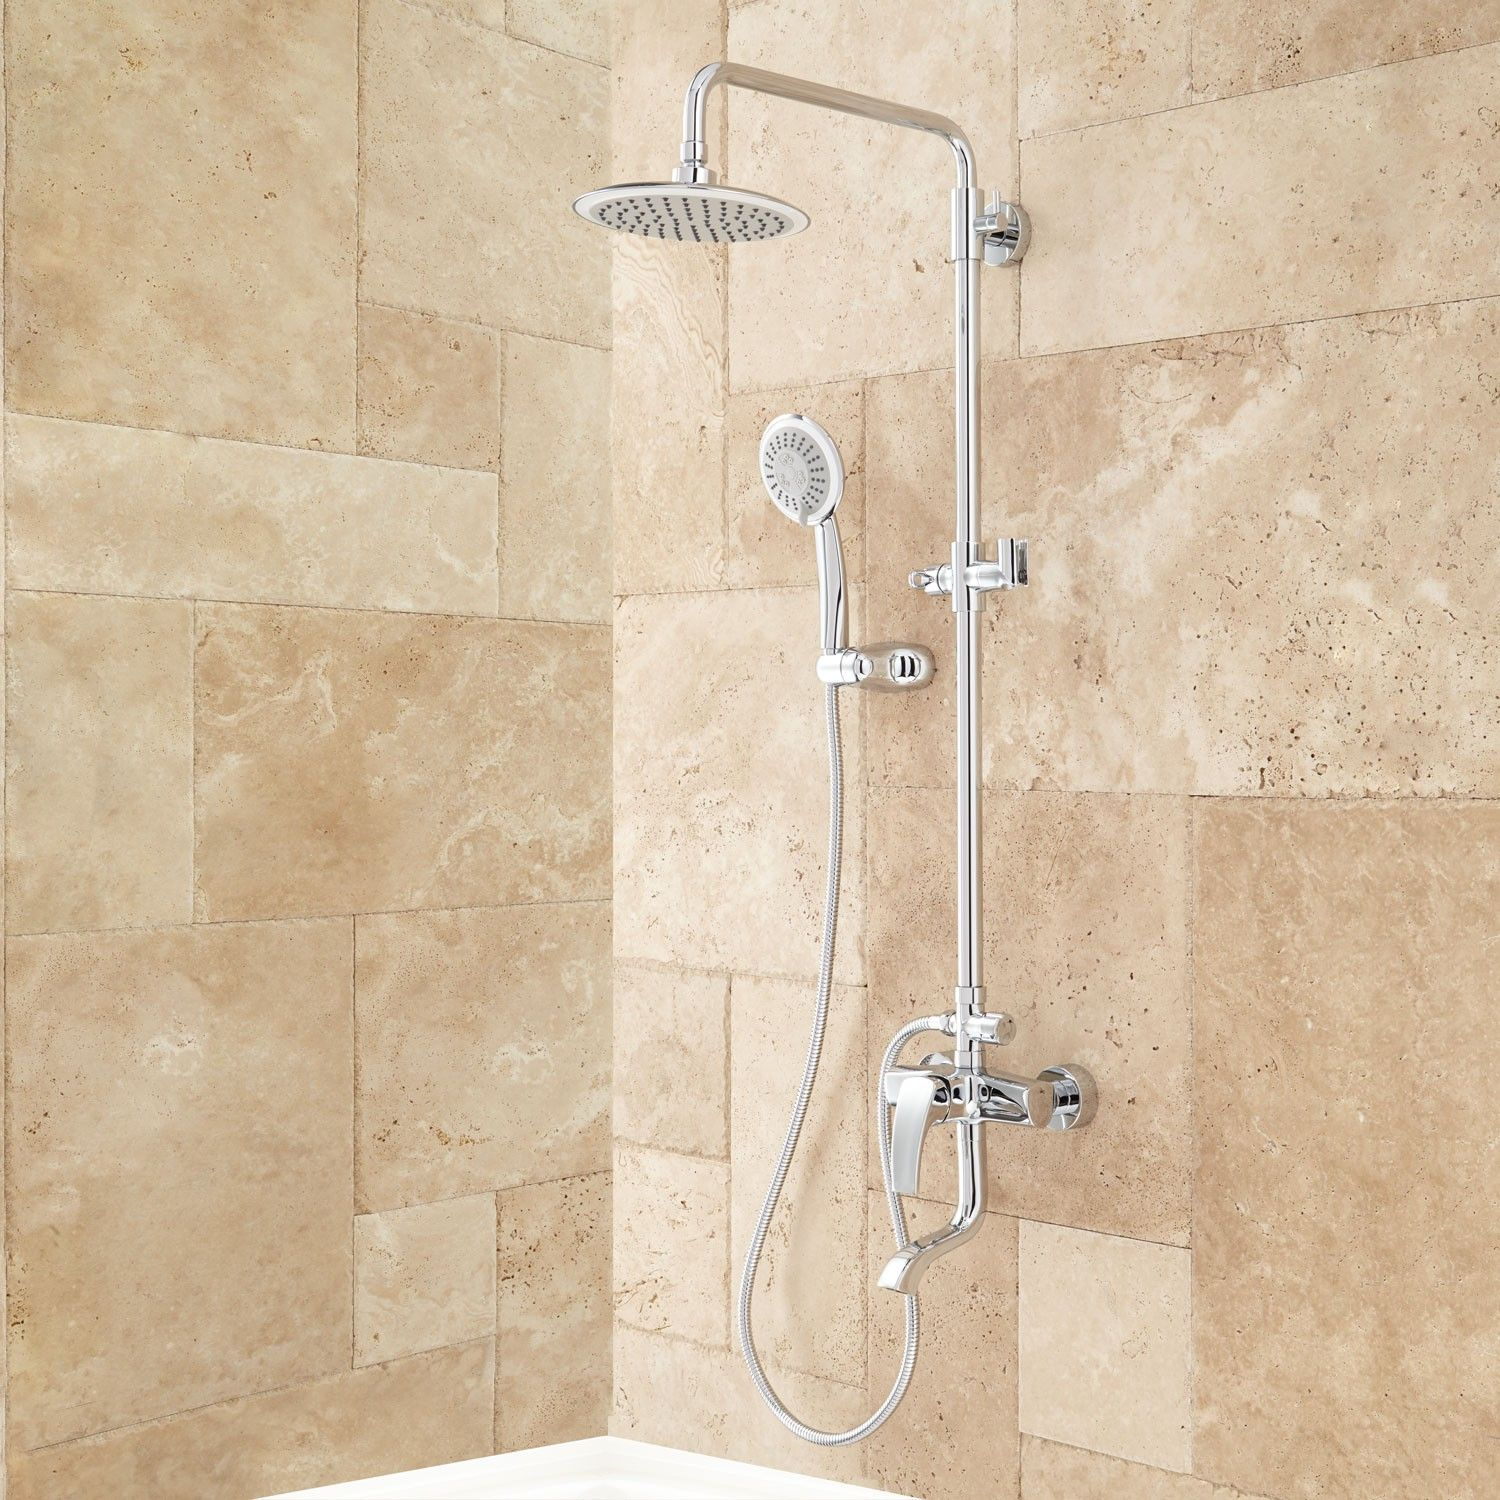 Bathroom shower pipe - Alliston Exposed Pipe Shower With Hand Shower Pipes Brushed Nickel And Bathtub Shower Combo